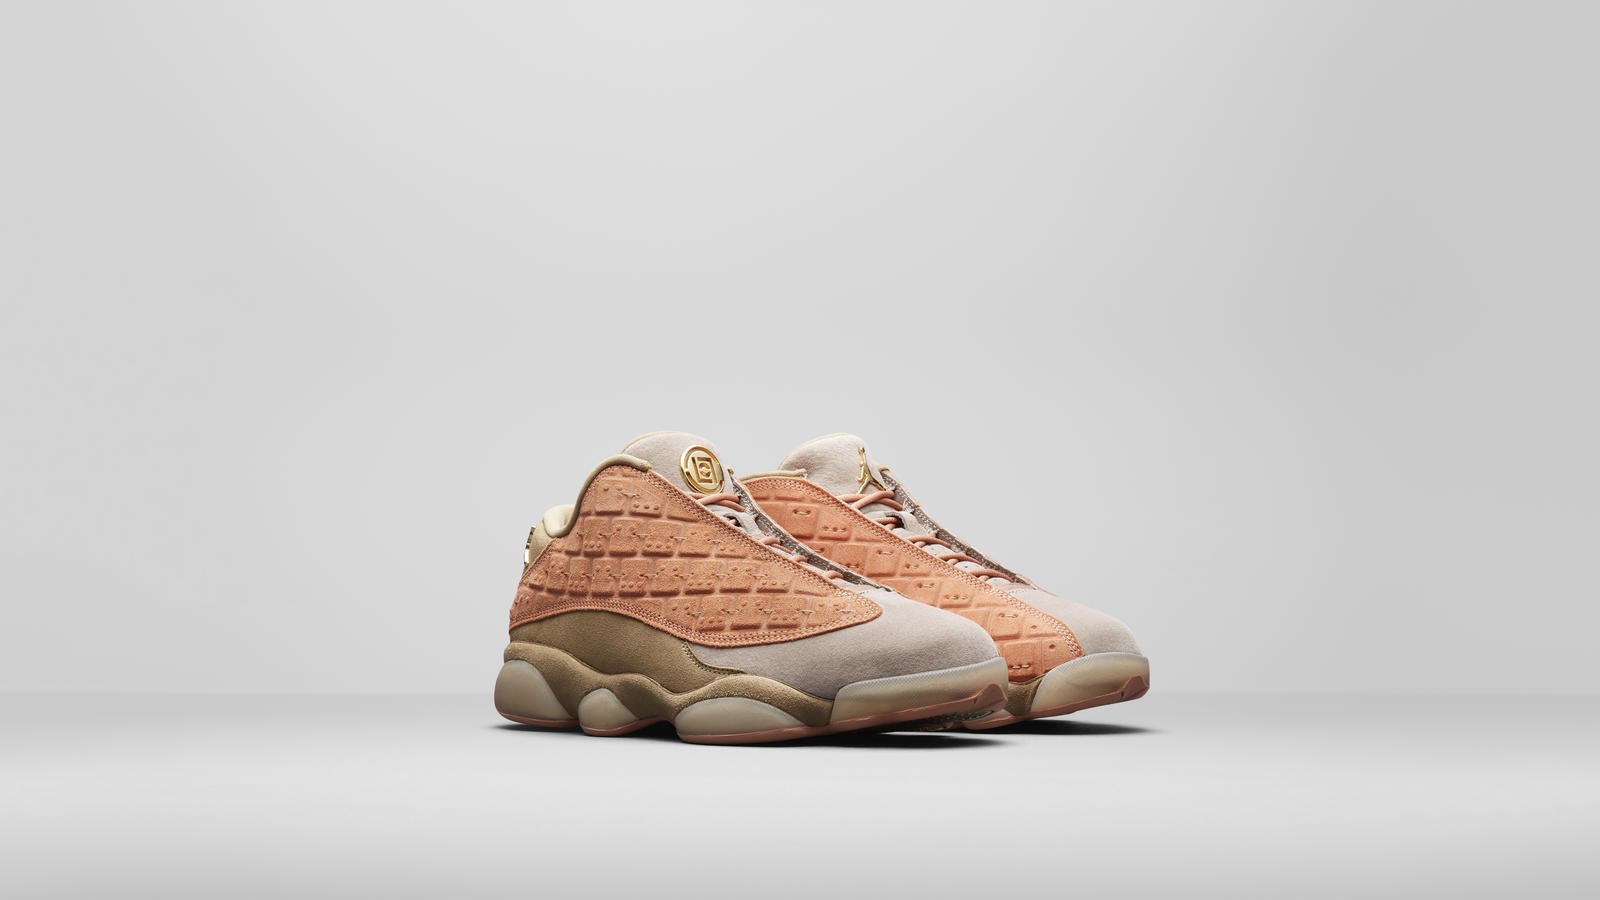 CLOT x Air Jordan XIII Low 1